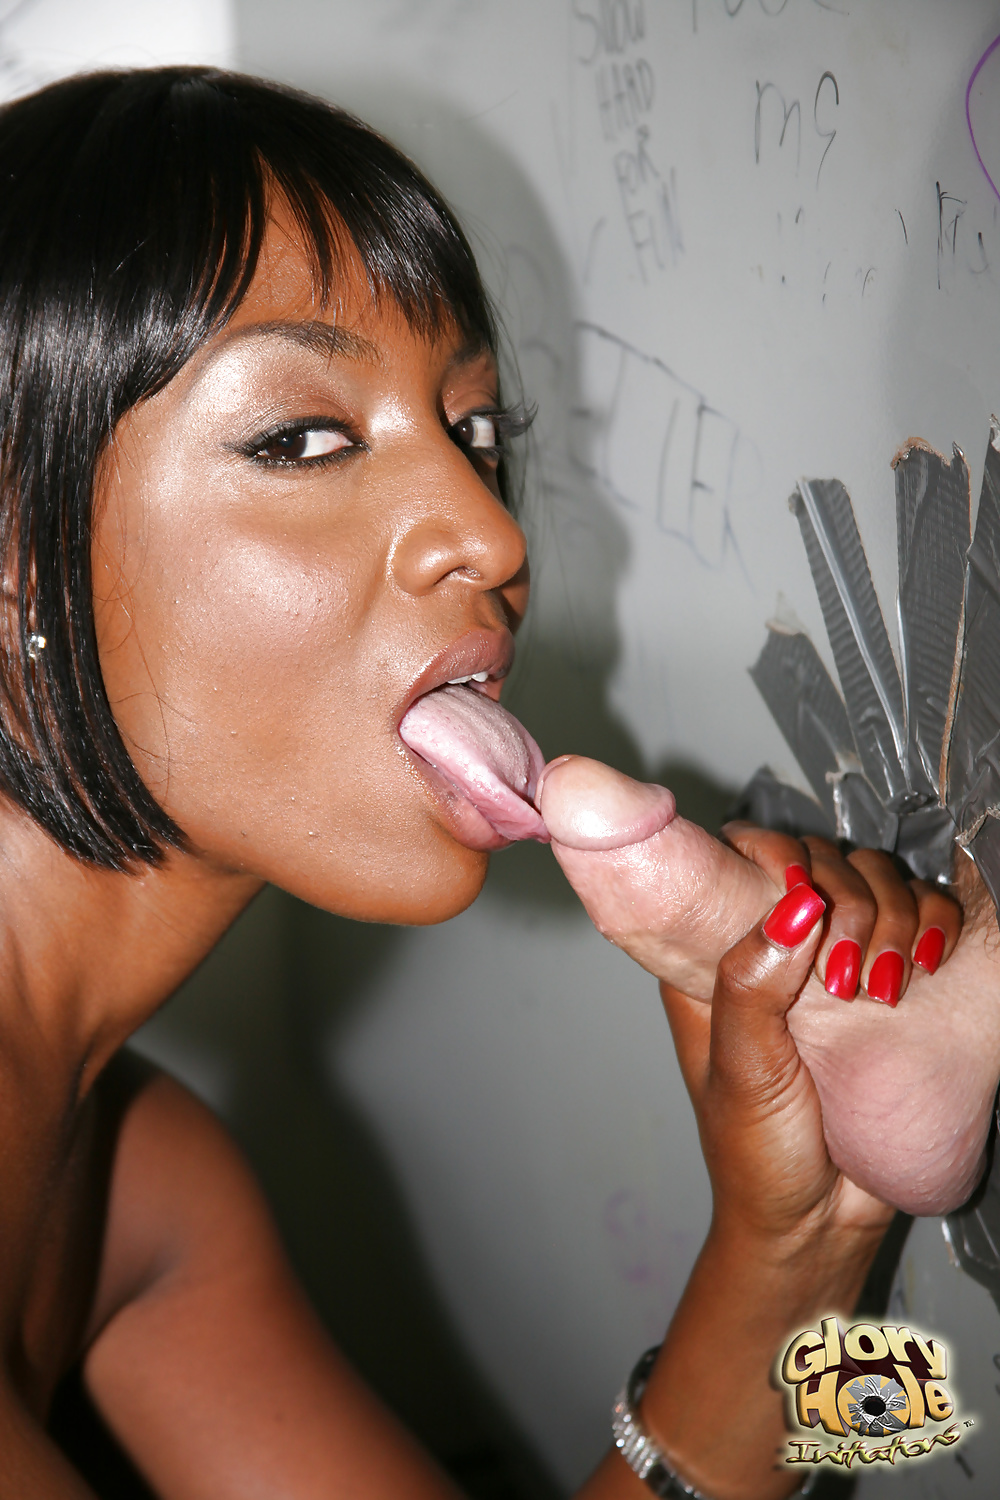 Ebony gloryhole porn and black sex galery pics